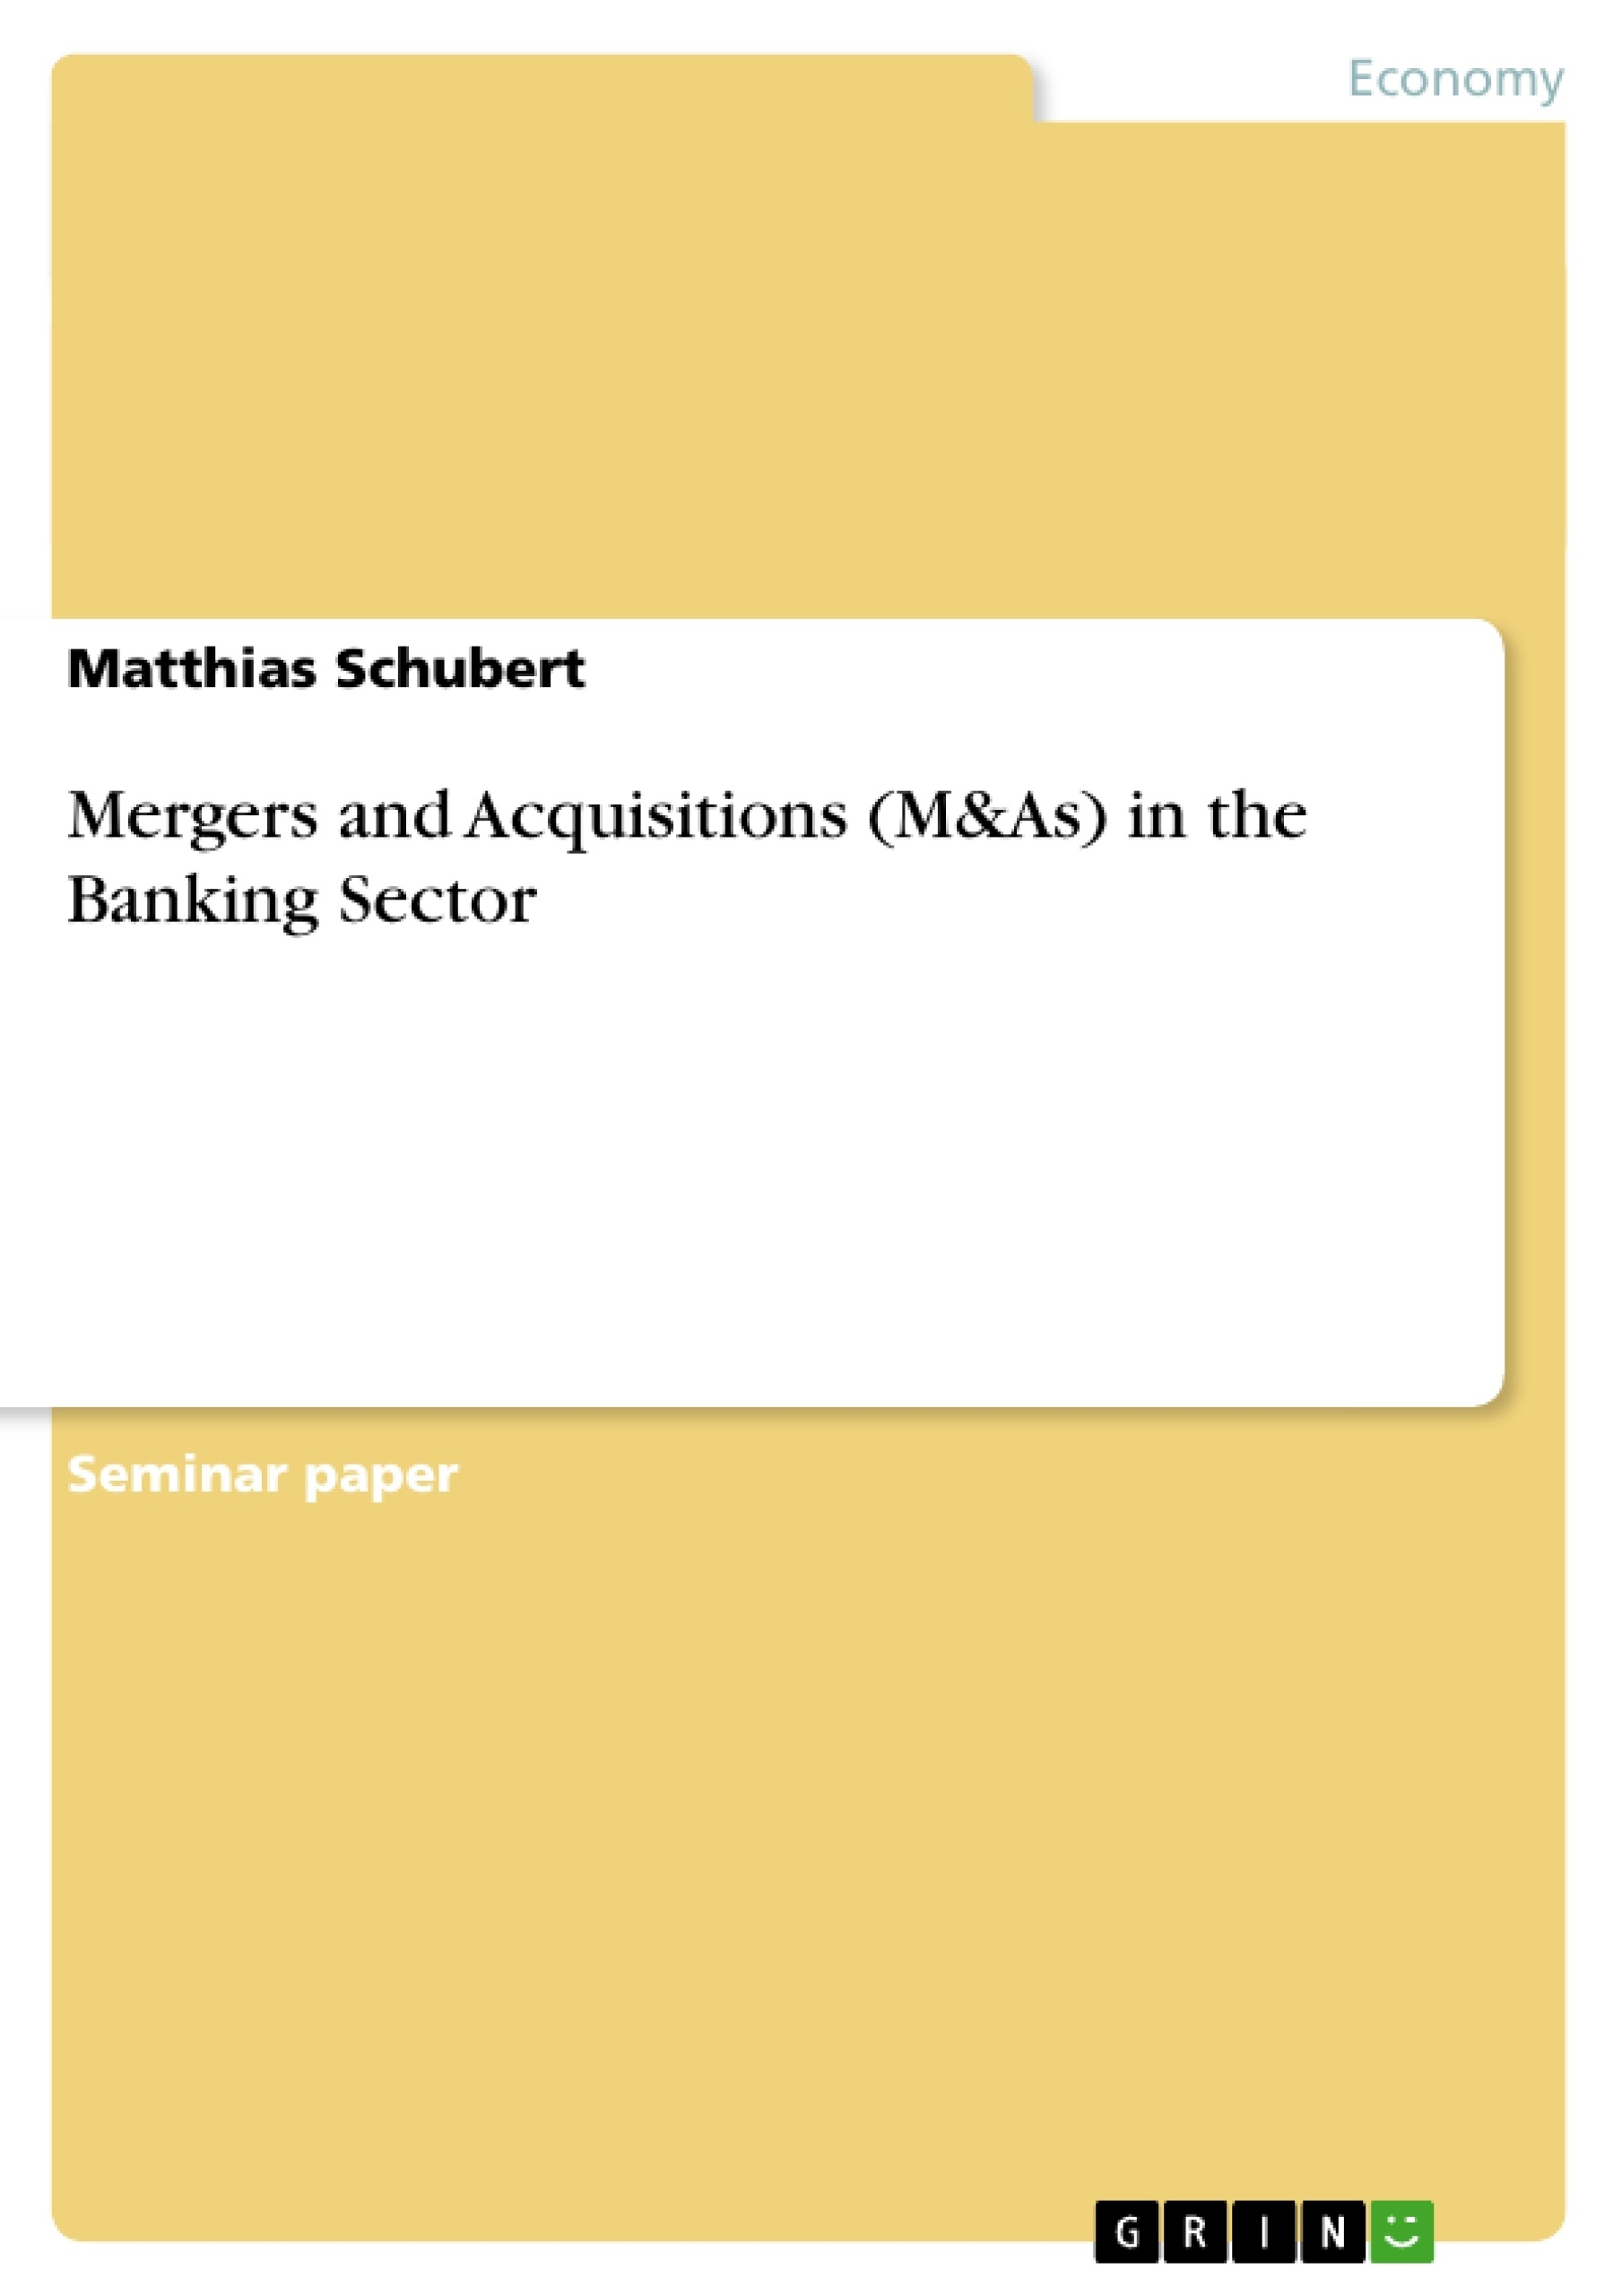 Master thesis mergers and acquisitions